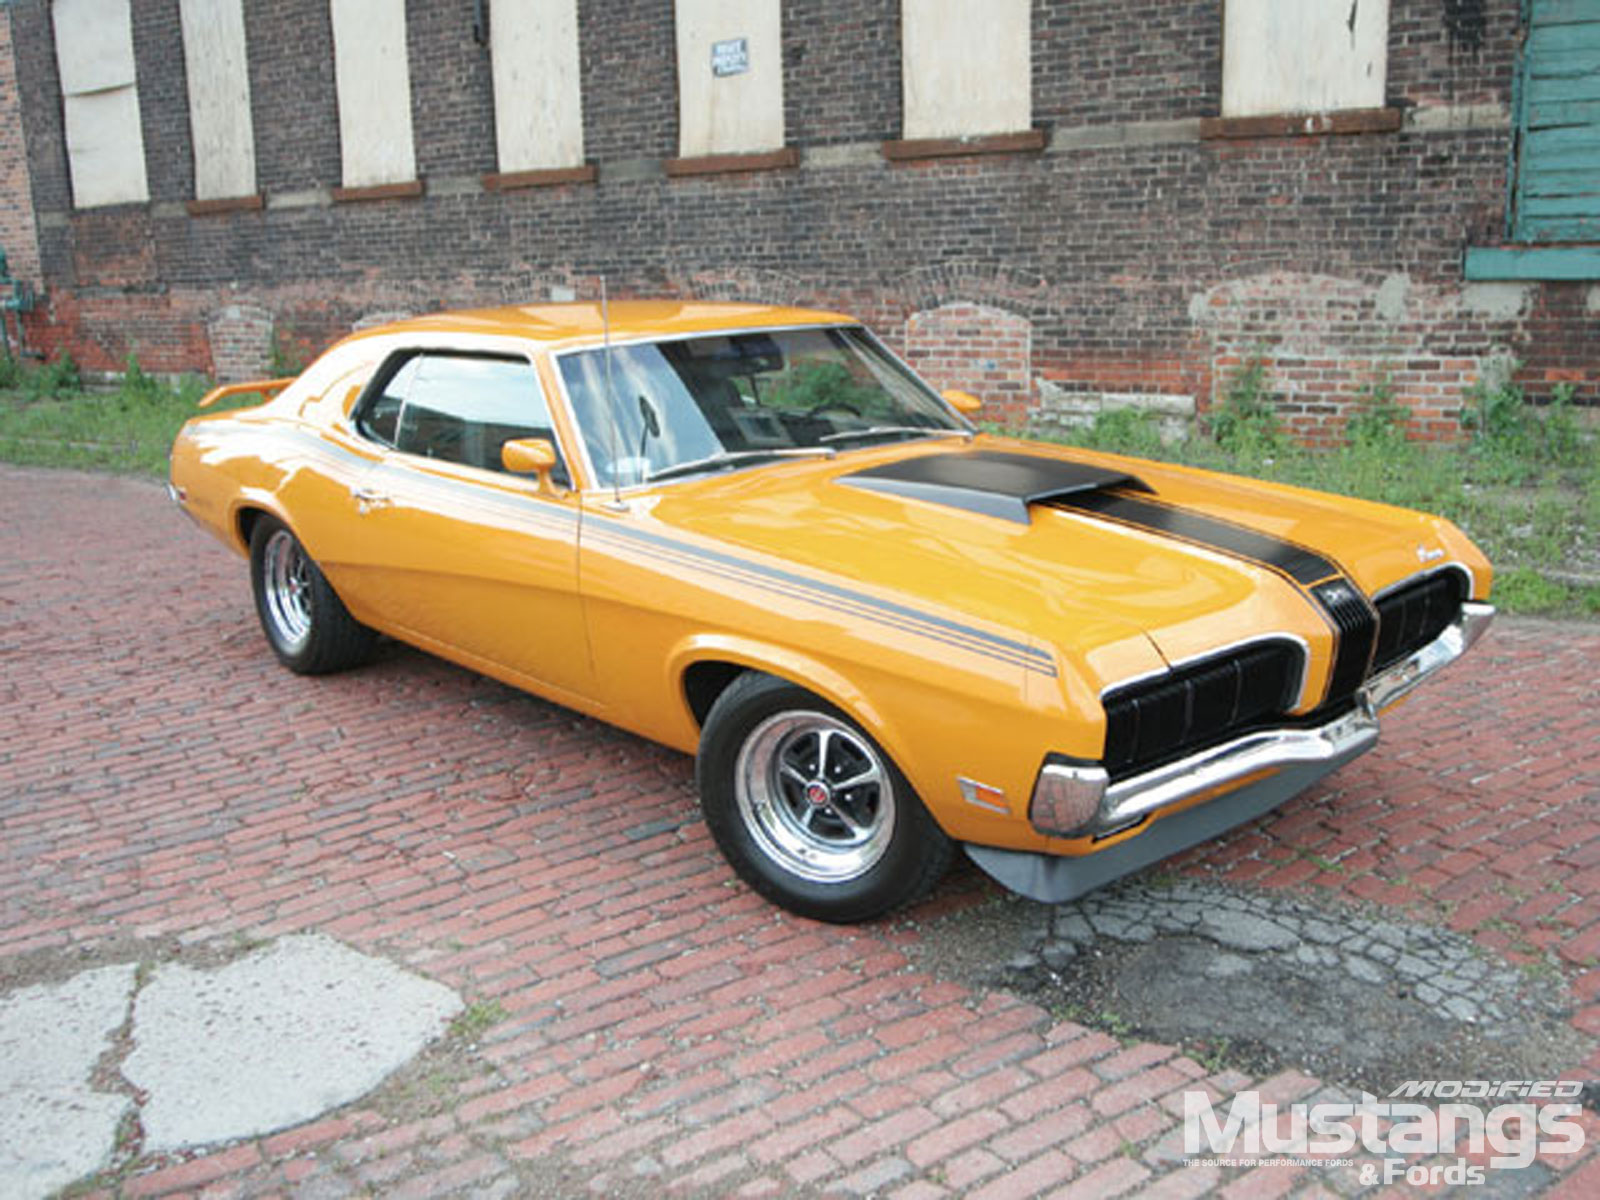 1970 Mercury Cougar Eliminator Front View